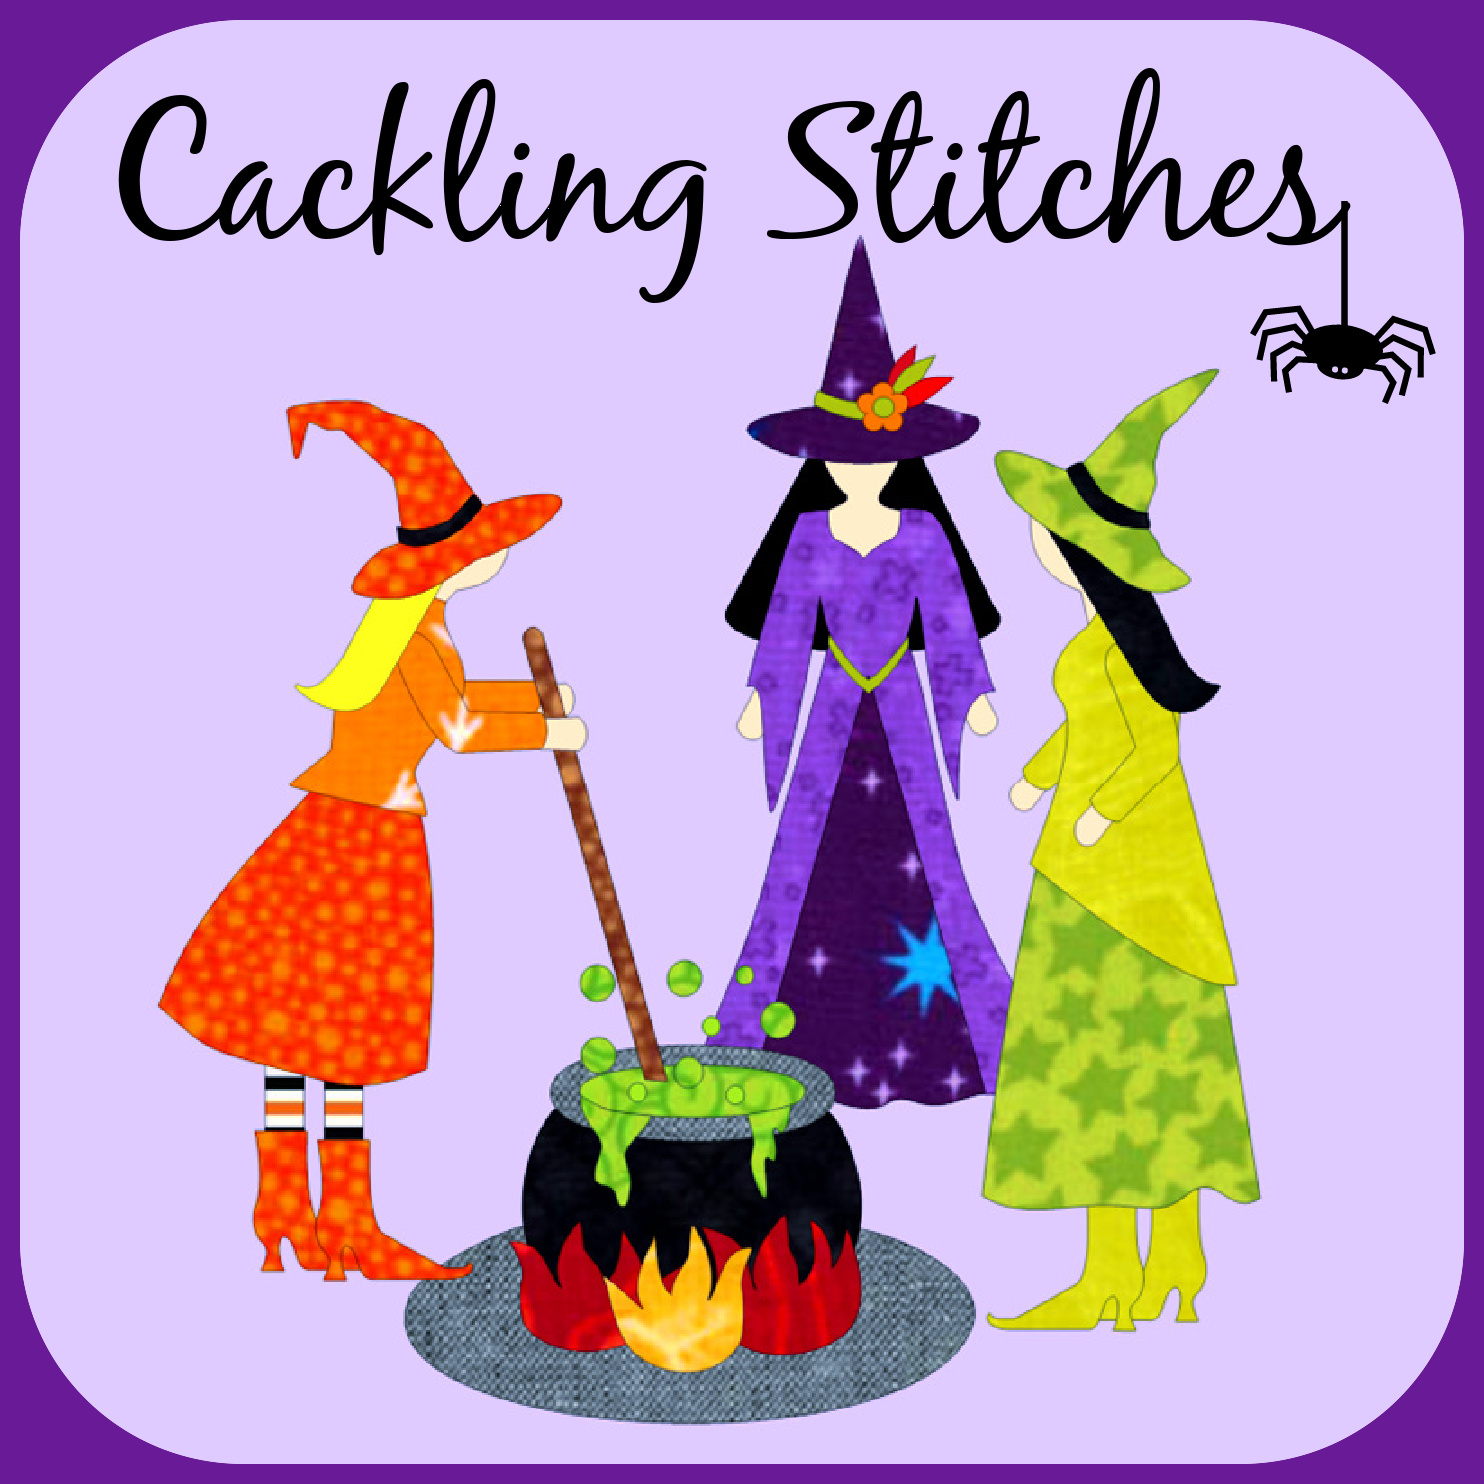 Cackling Stitches Group